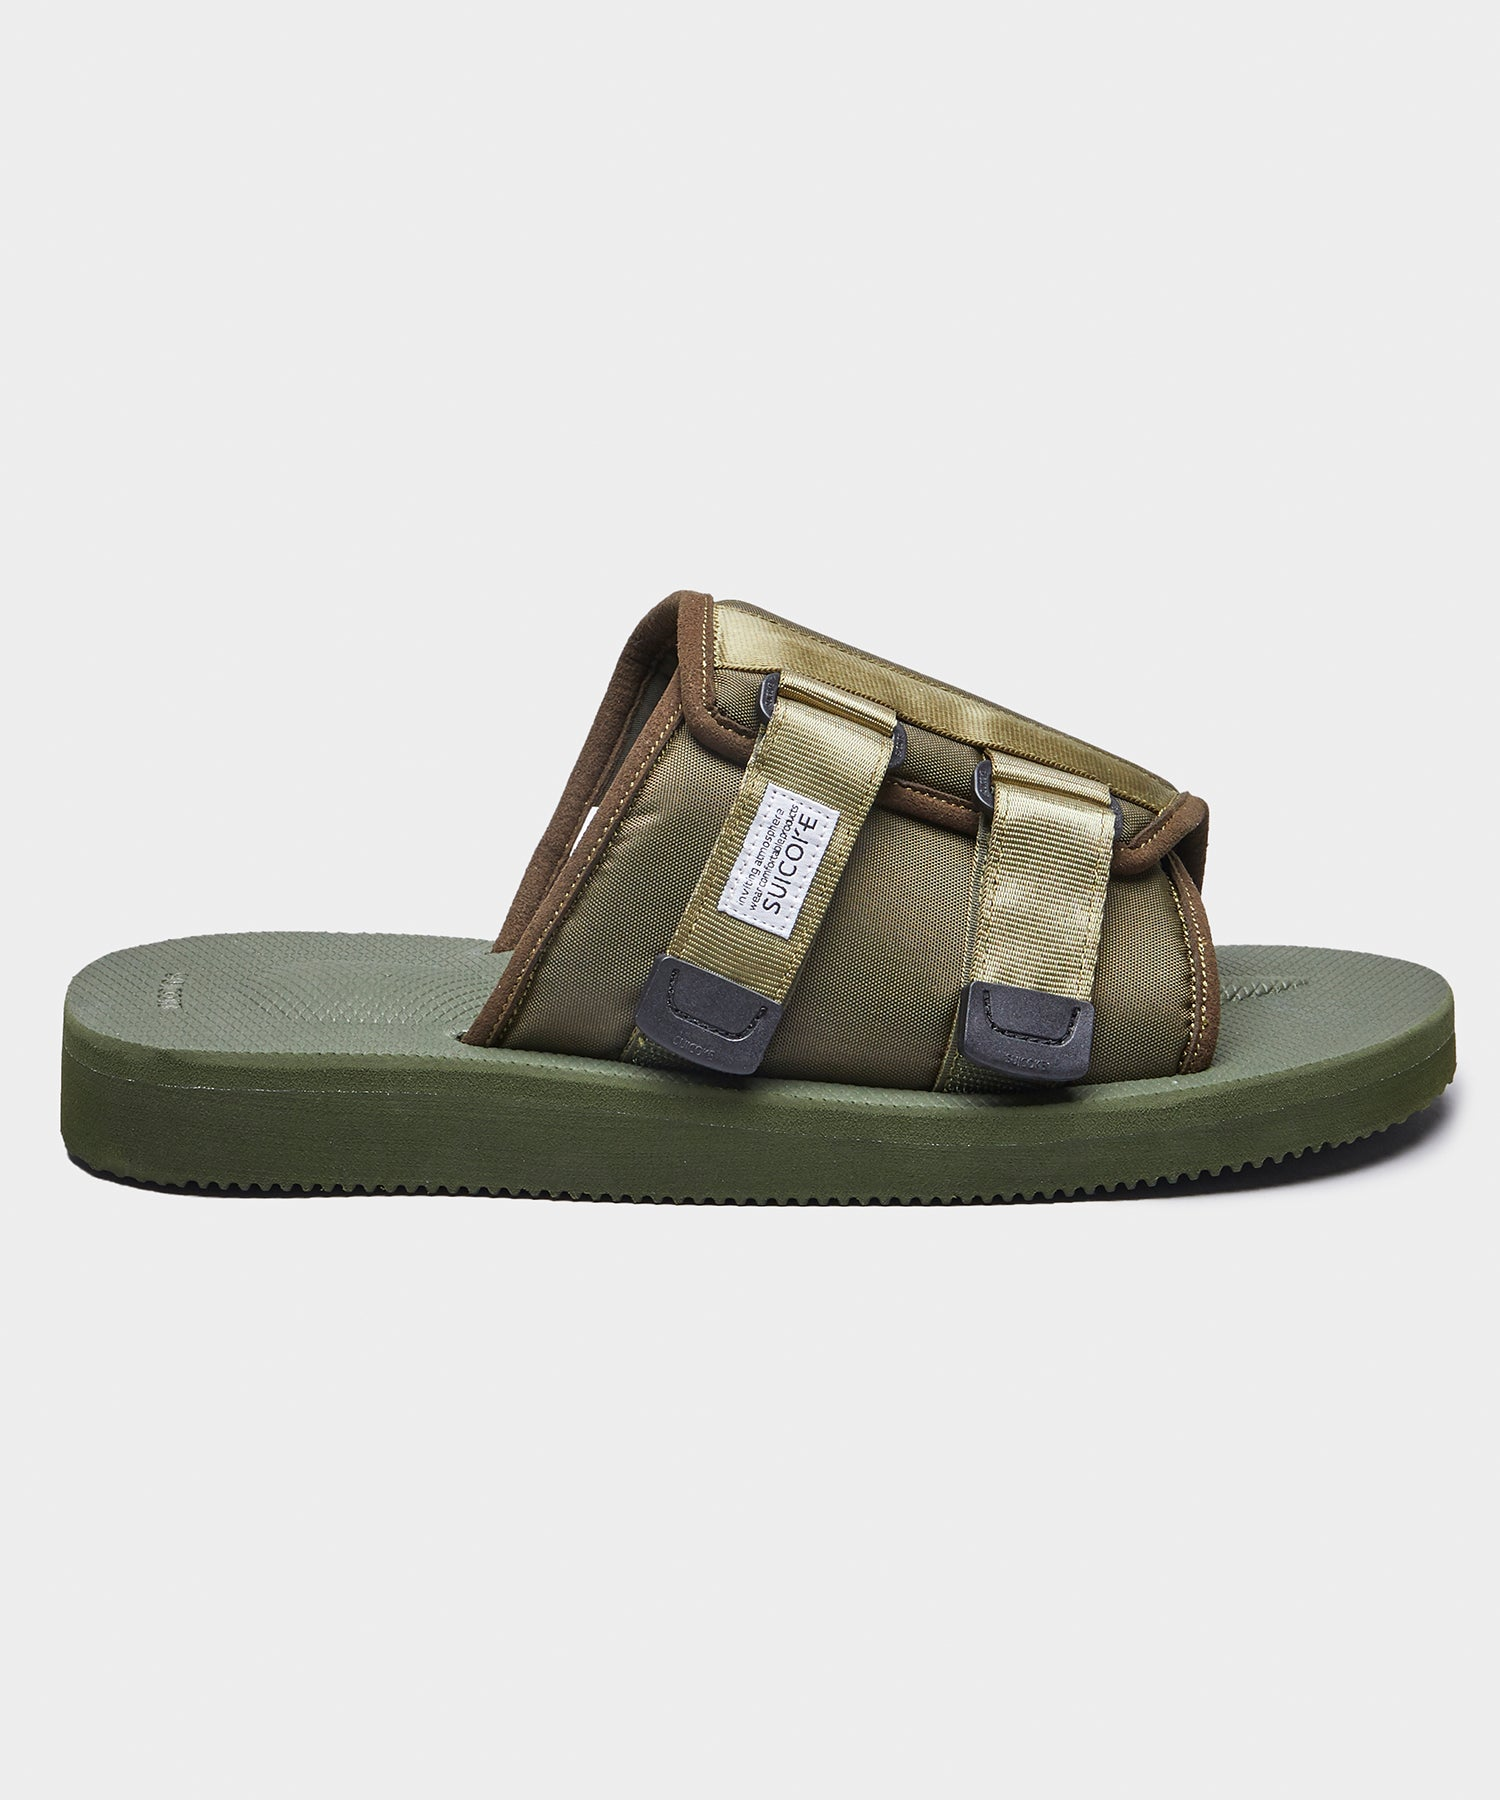 Suicoke Kaw-cab in Olive